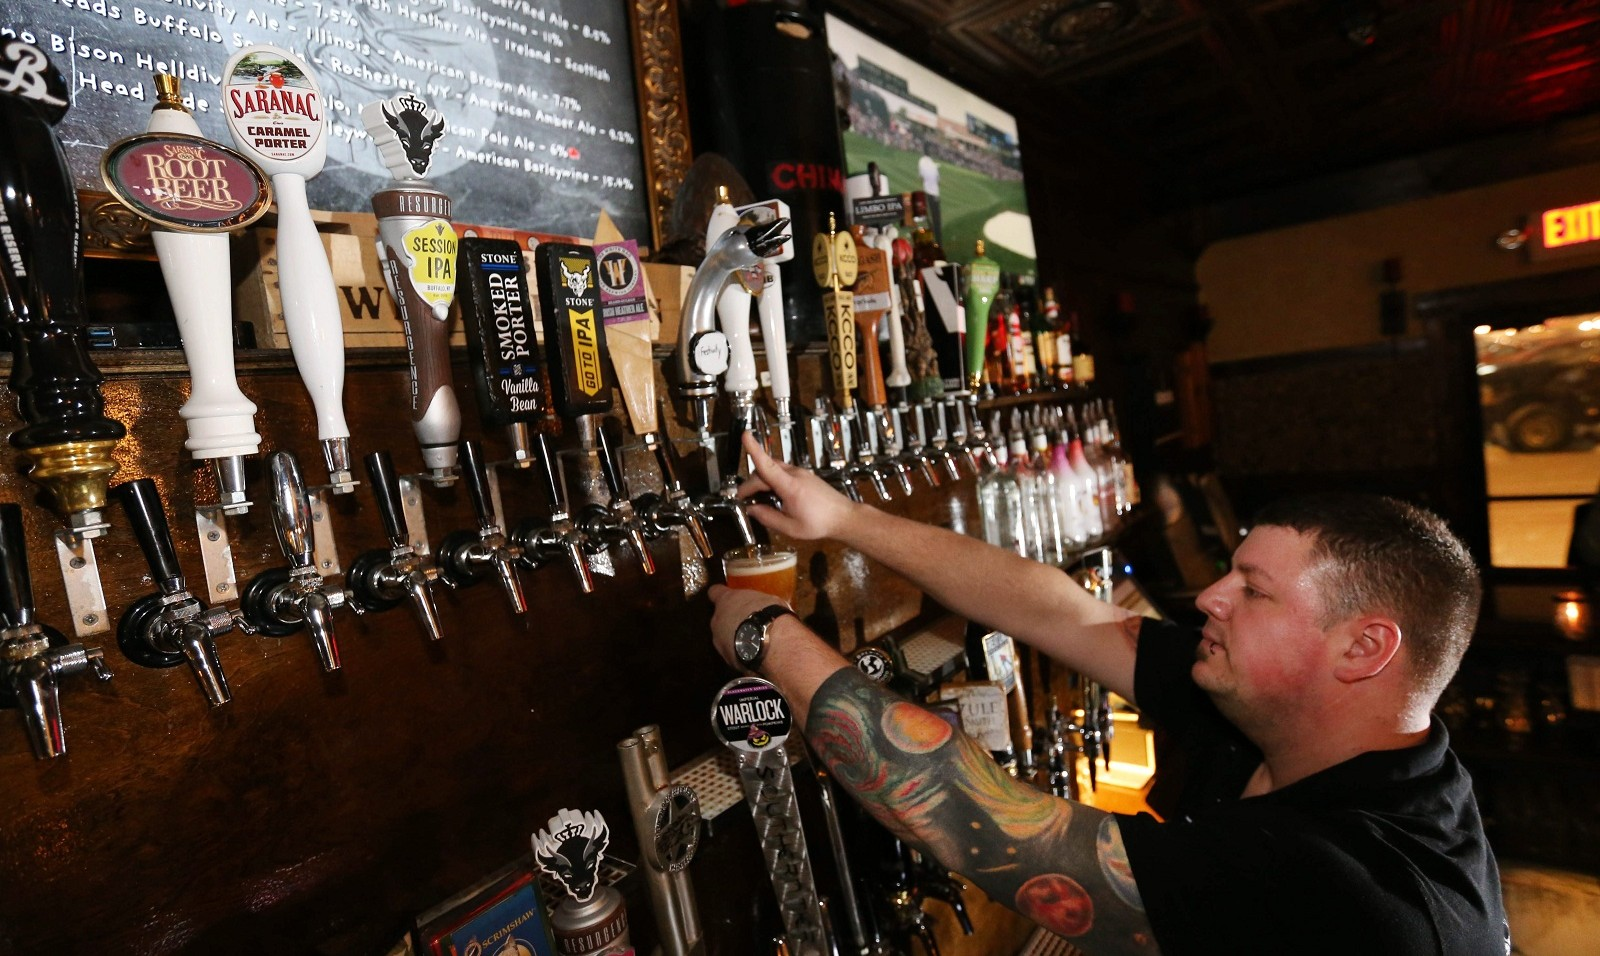 Griffon Pub bartender David Riggs pours a Six Point Bengali Tiger IPA, made in New York City, for a customer. (Sharon Cantillon/Buffalo News)